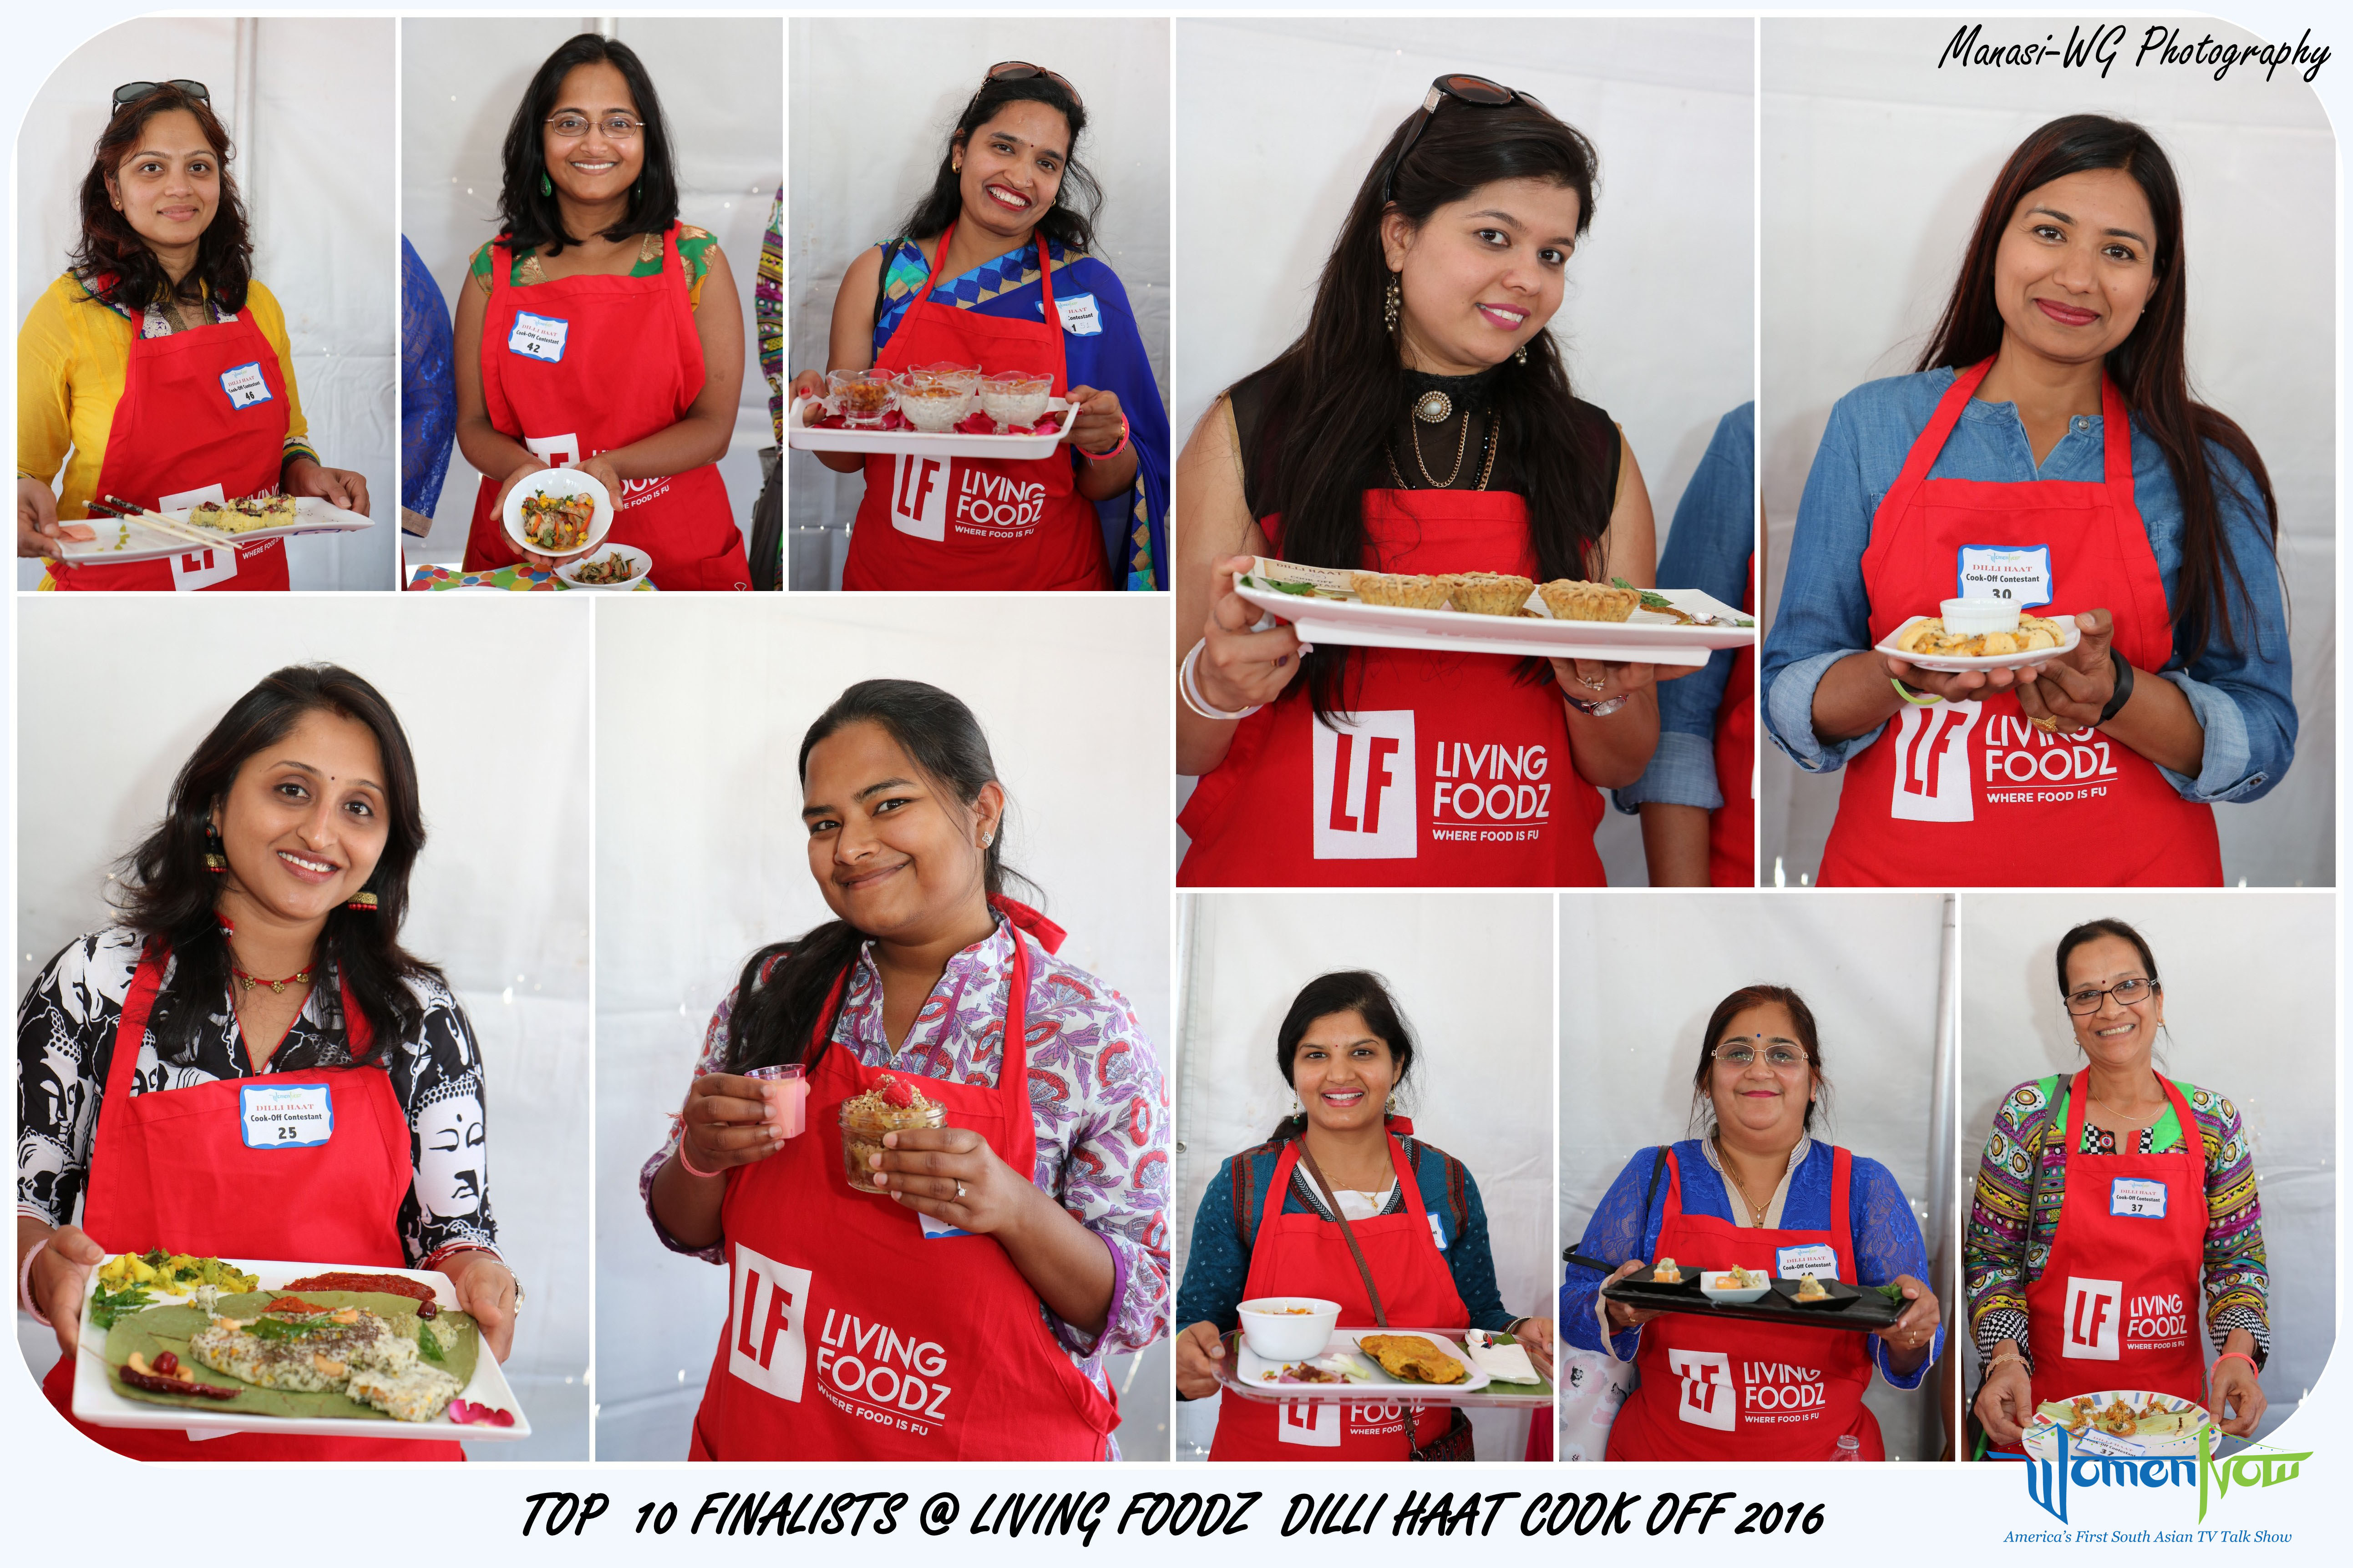 Dilli Hat12, cookingcompetition, chefranveerbrar, masterchefindia, foodcompetition, bayarea, indianfood, foodblog